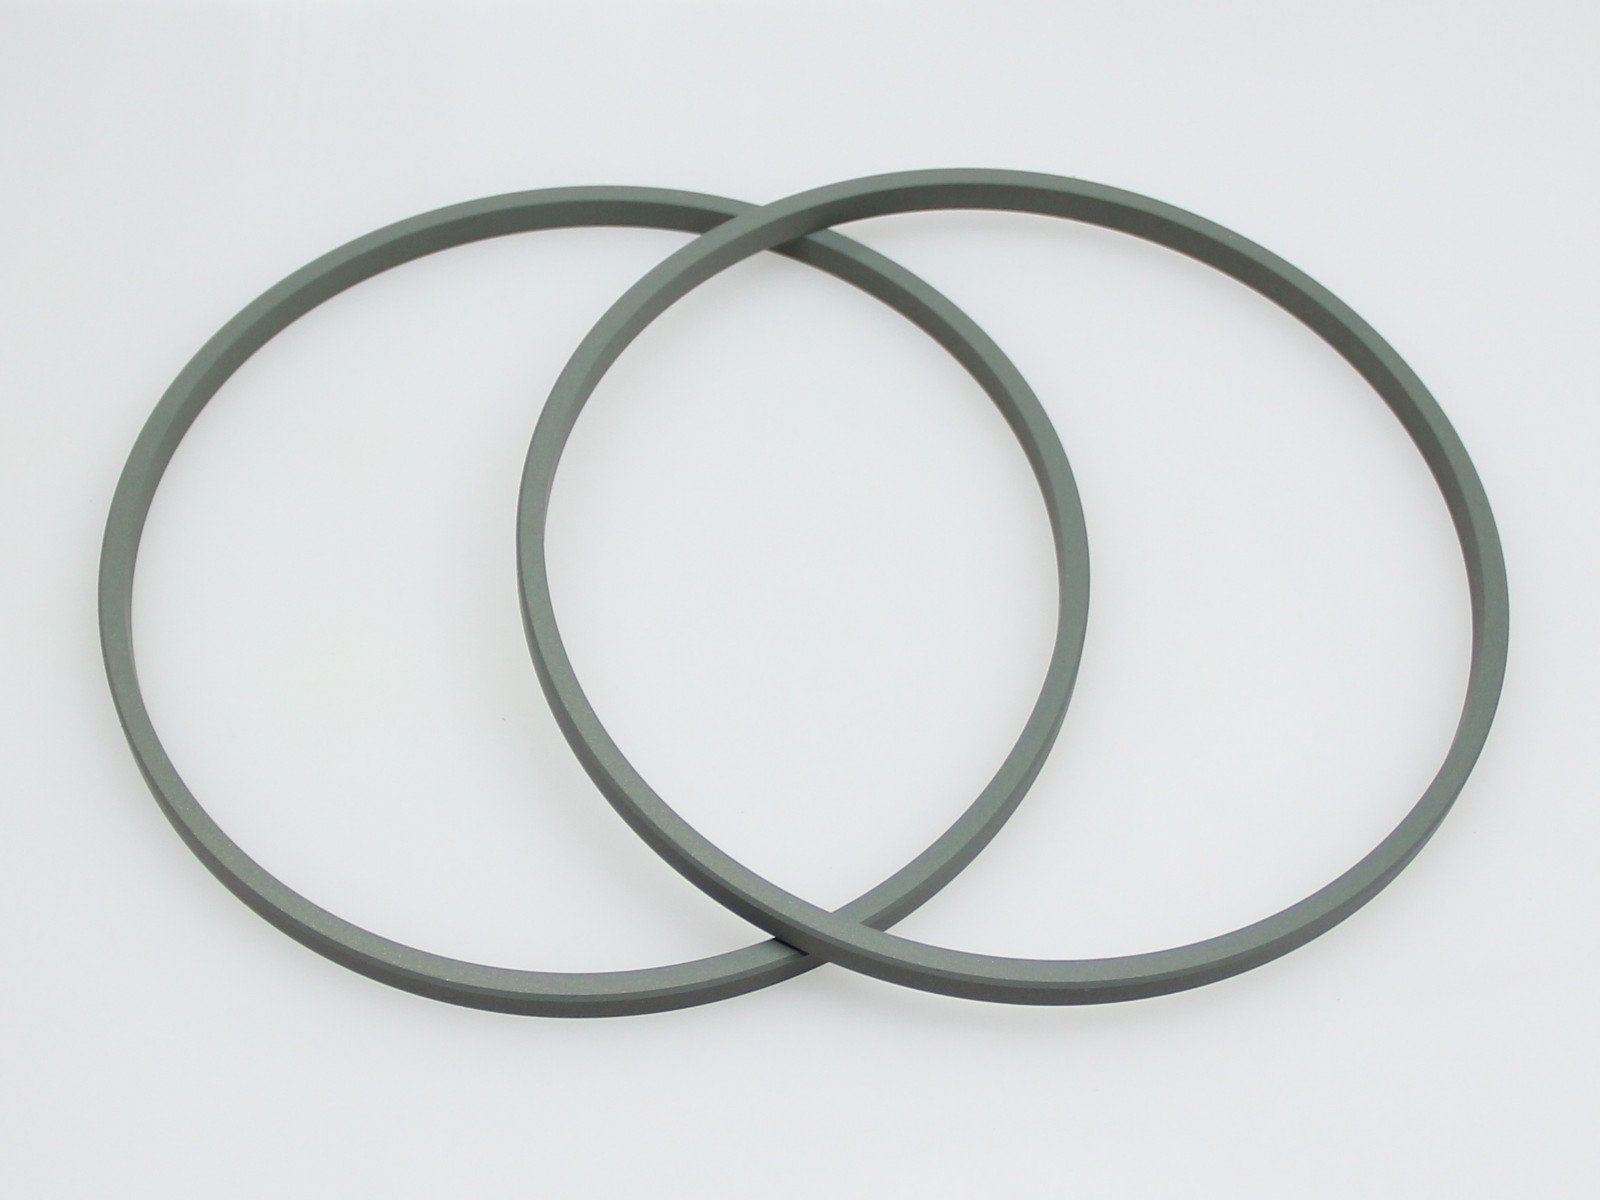 DSH-Piston Seal Design | Piston Seal Bronze Filled PTFE Glyd Ring-2